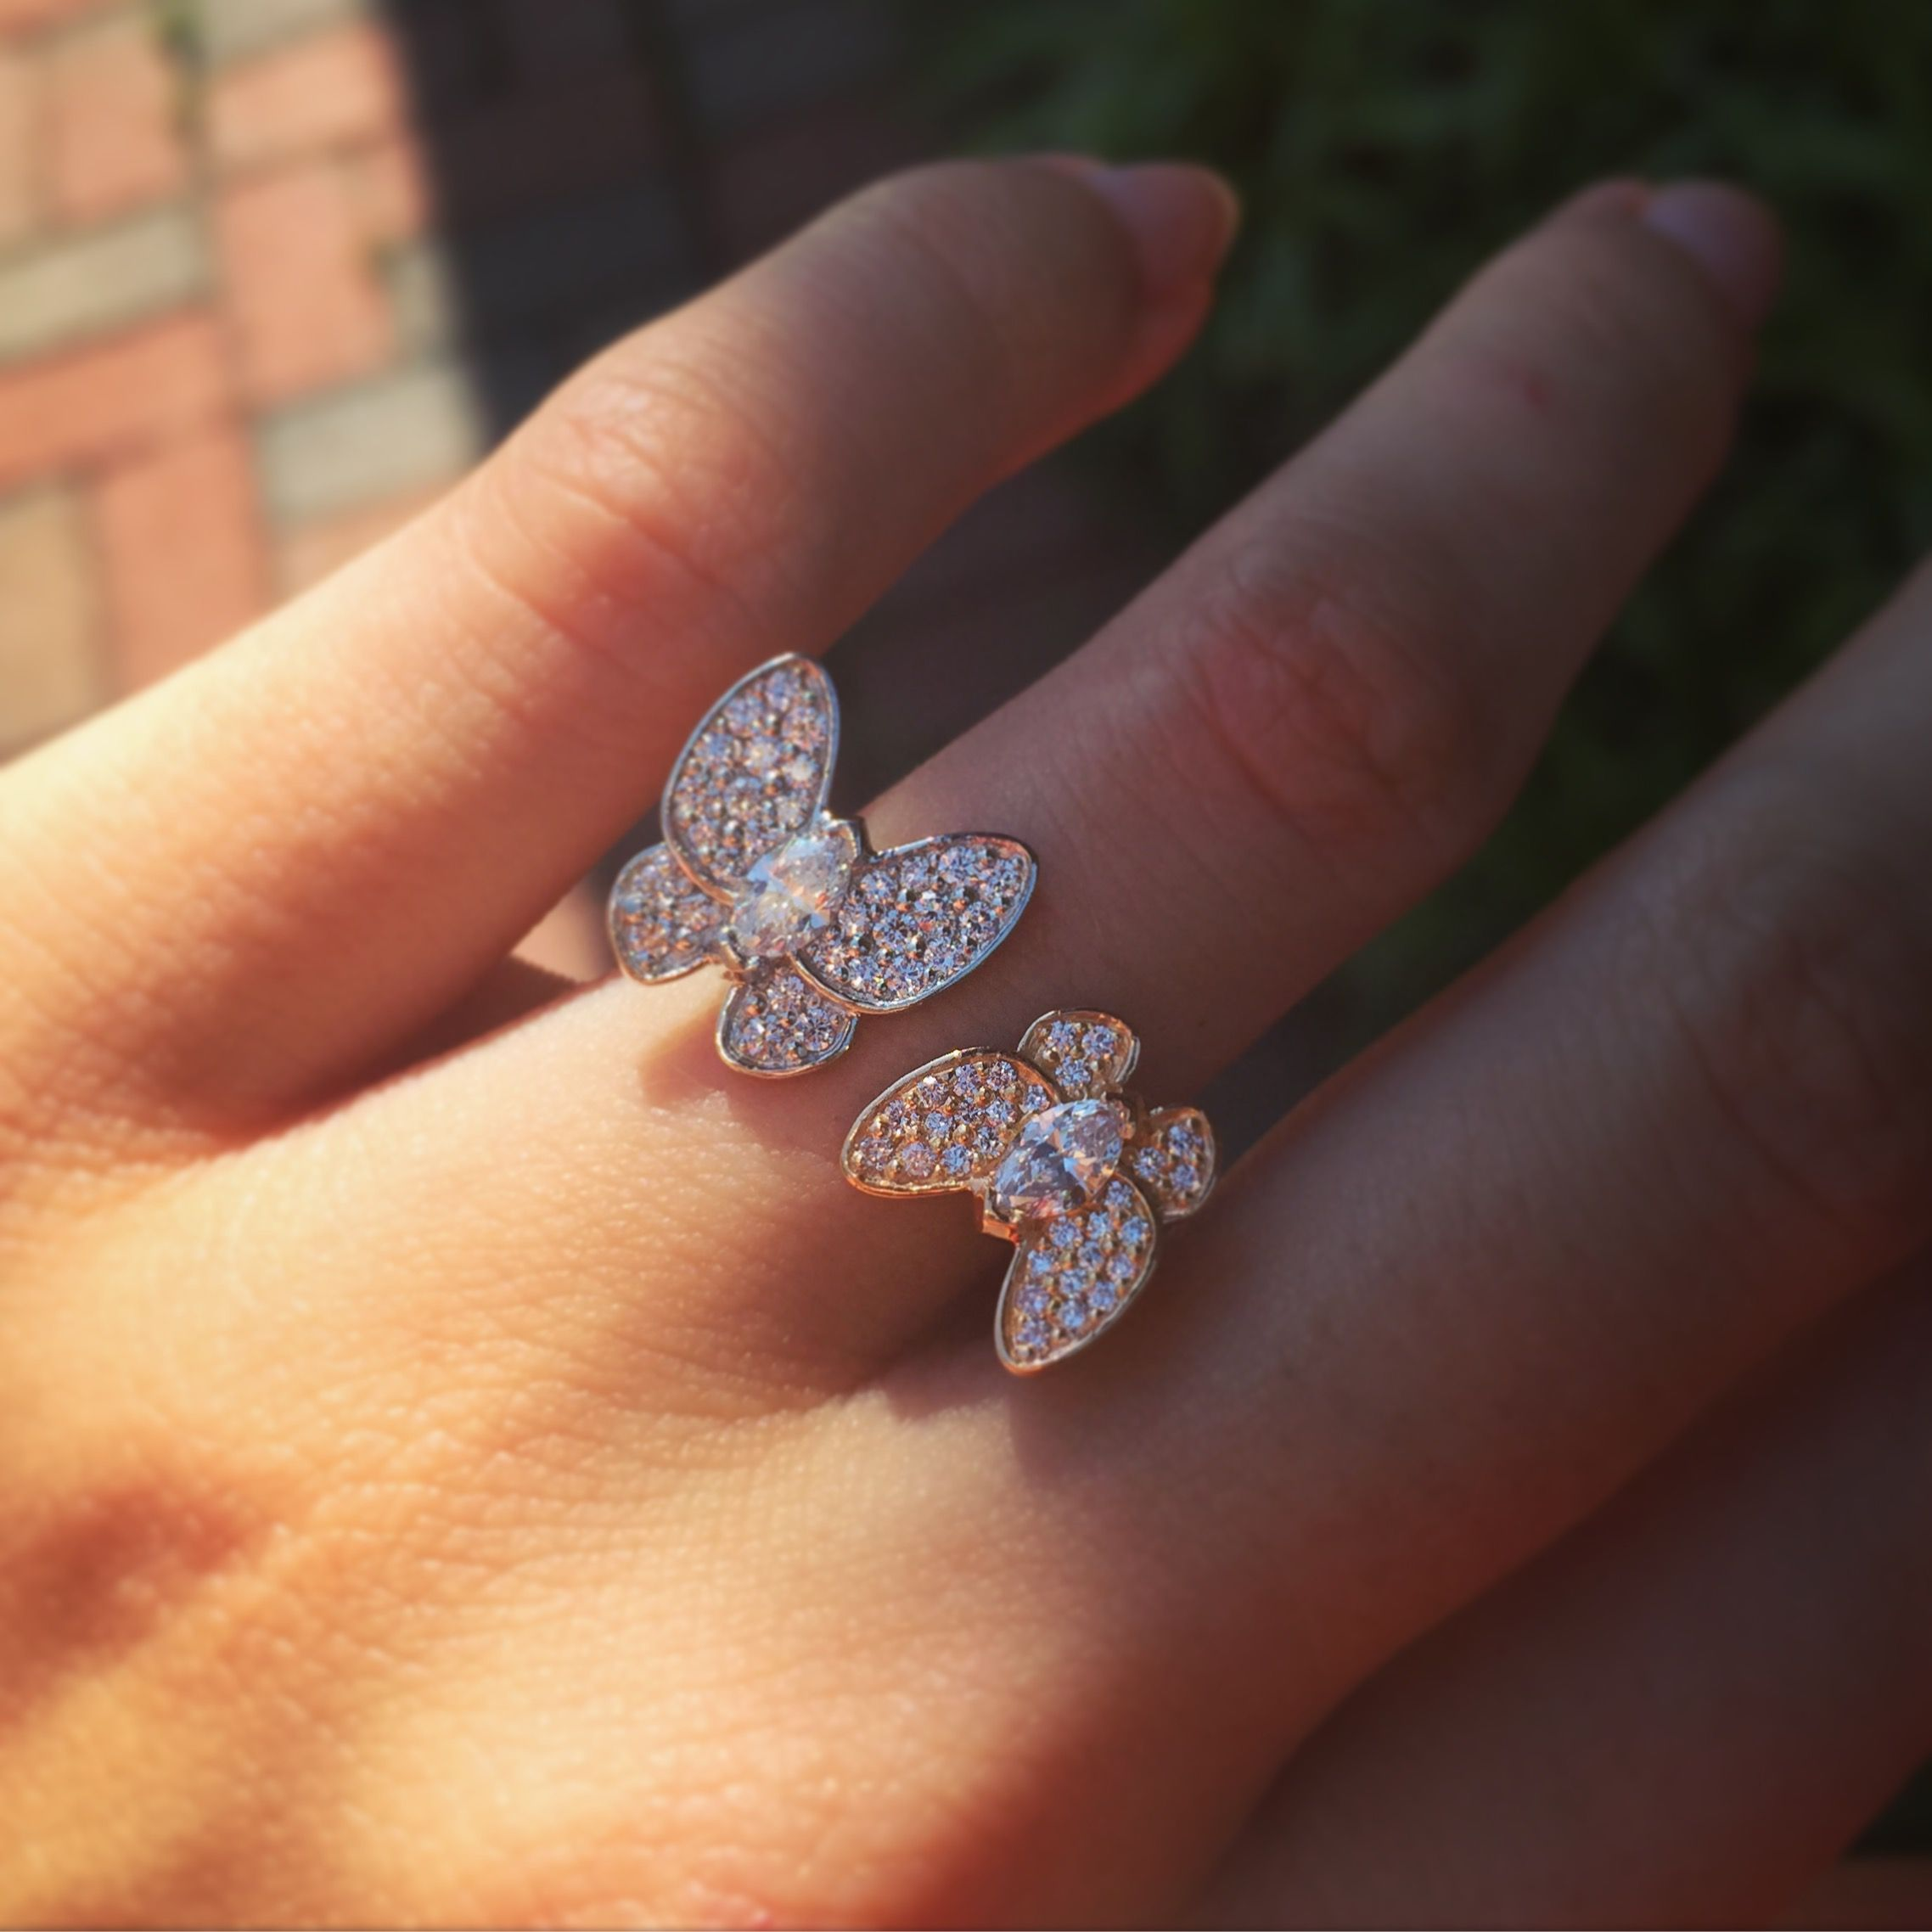 Fly away with this beautiful butterfly diamond ring set in rose